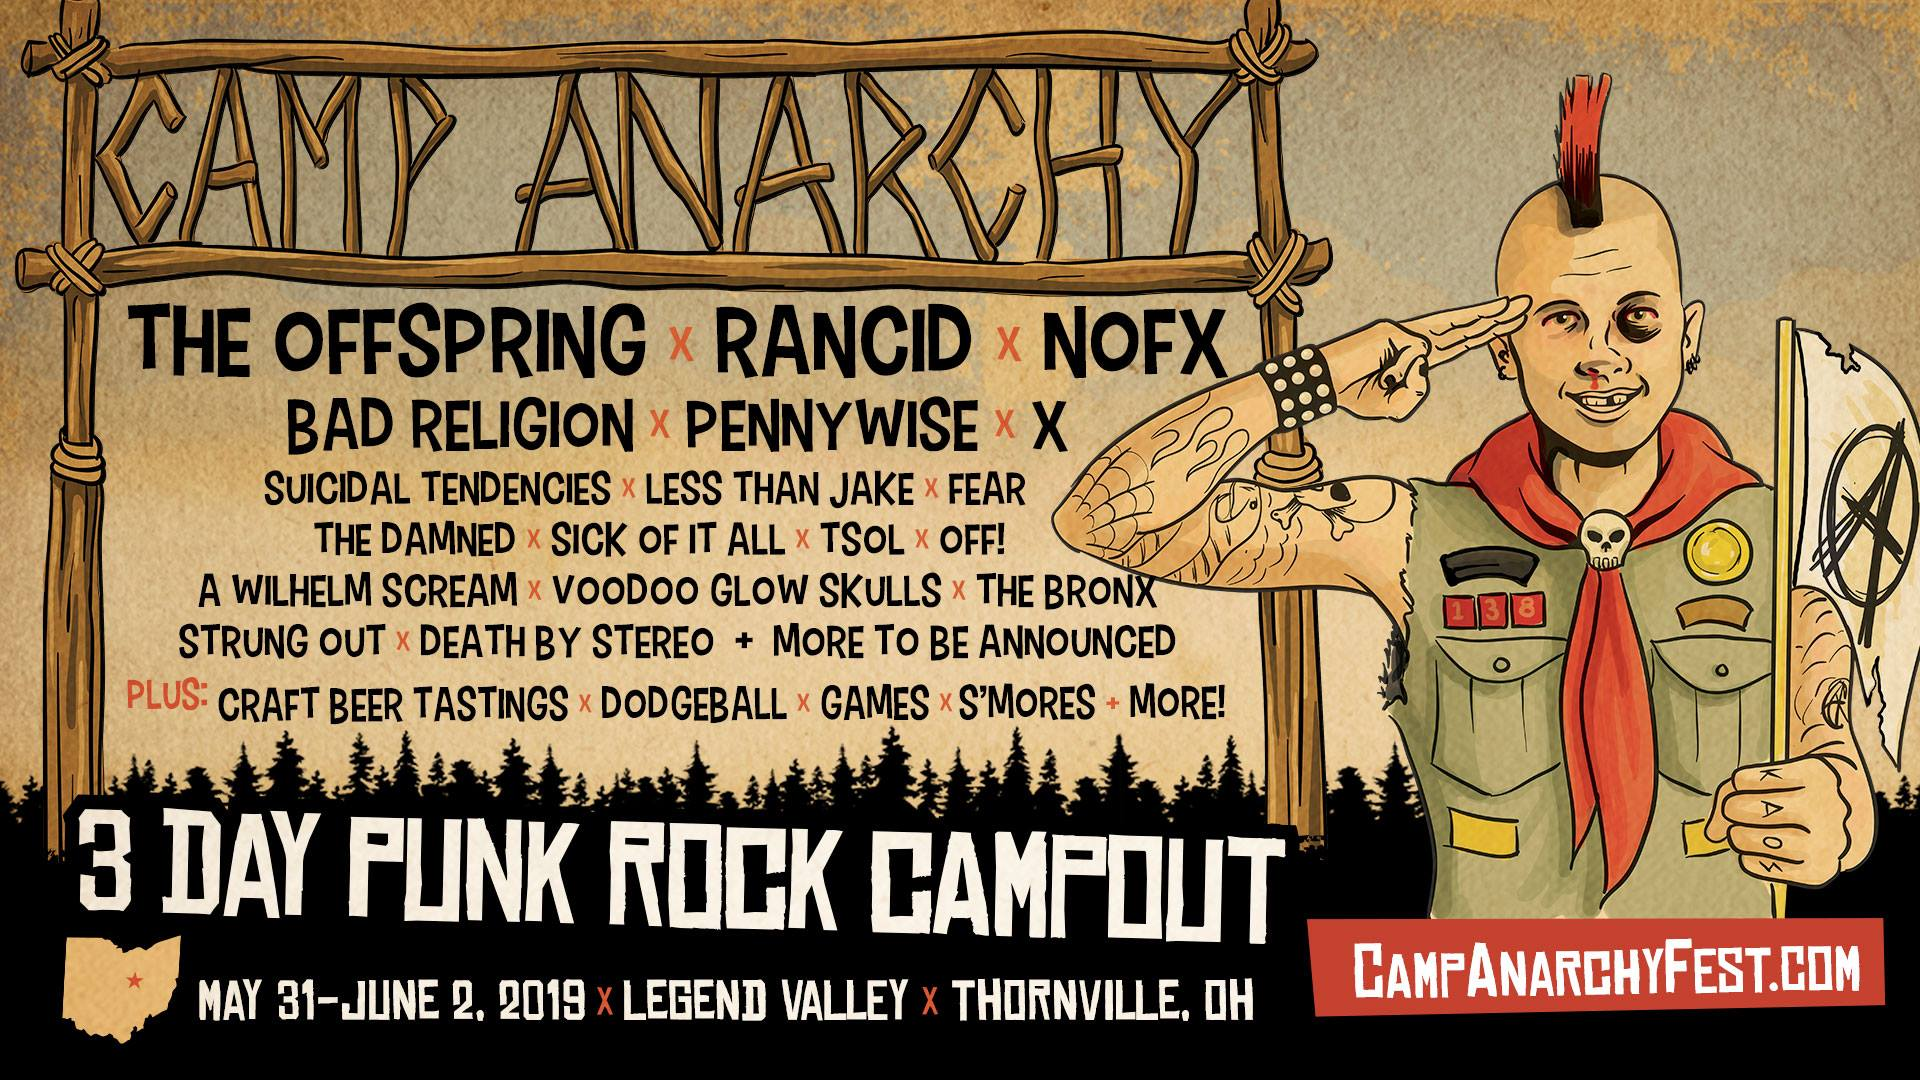 CAMP ANARCHY: Punk, Camping & Beer.. Oh My!